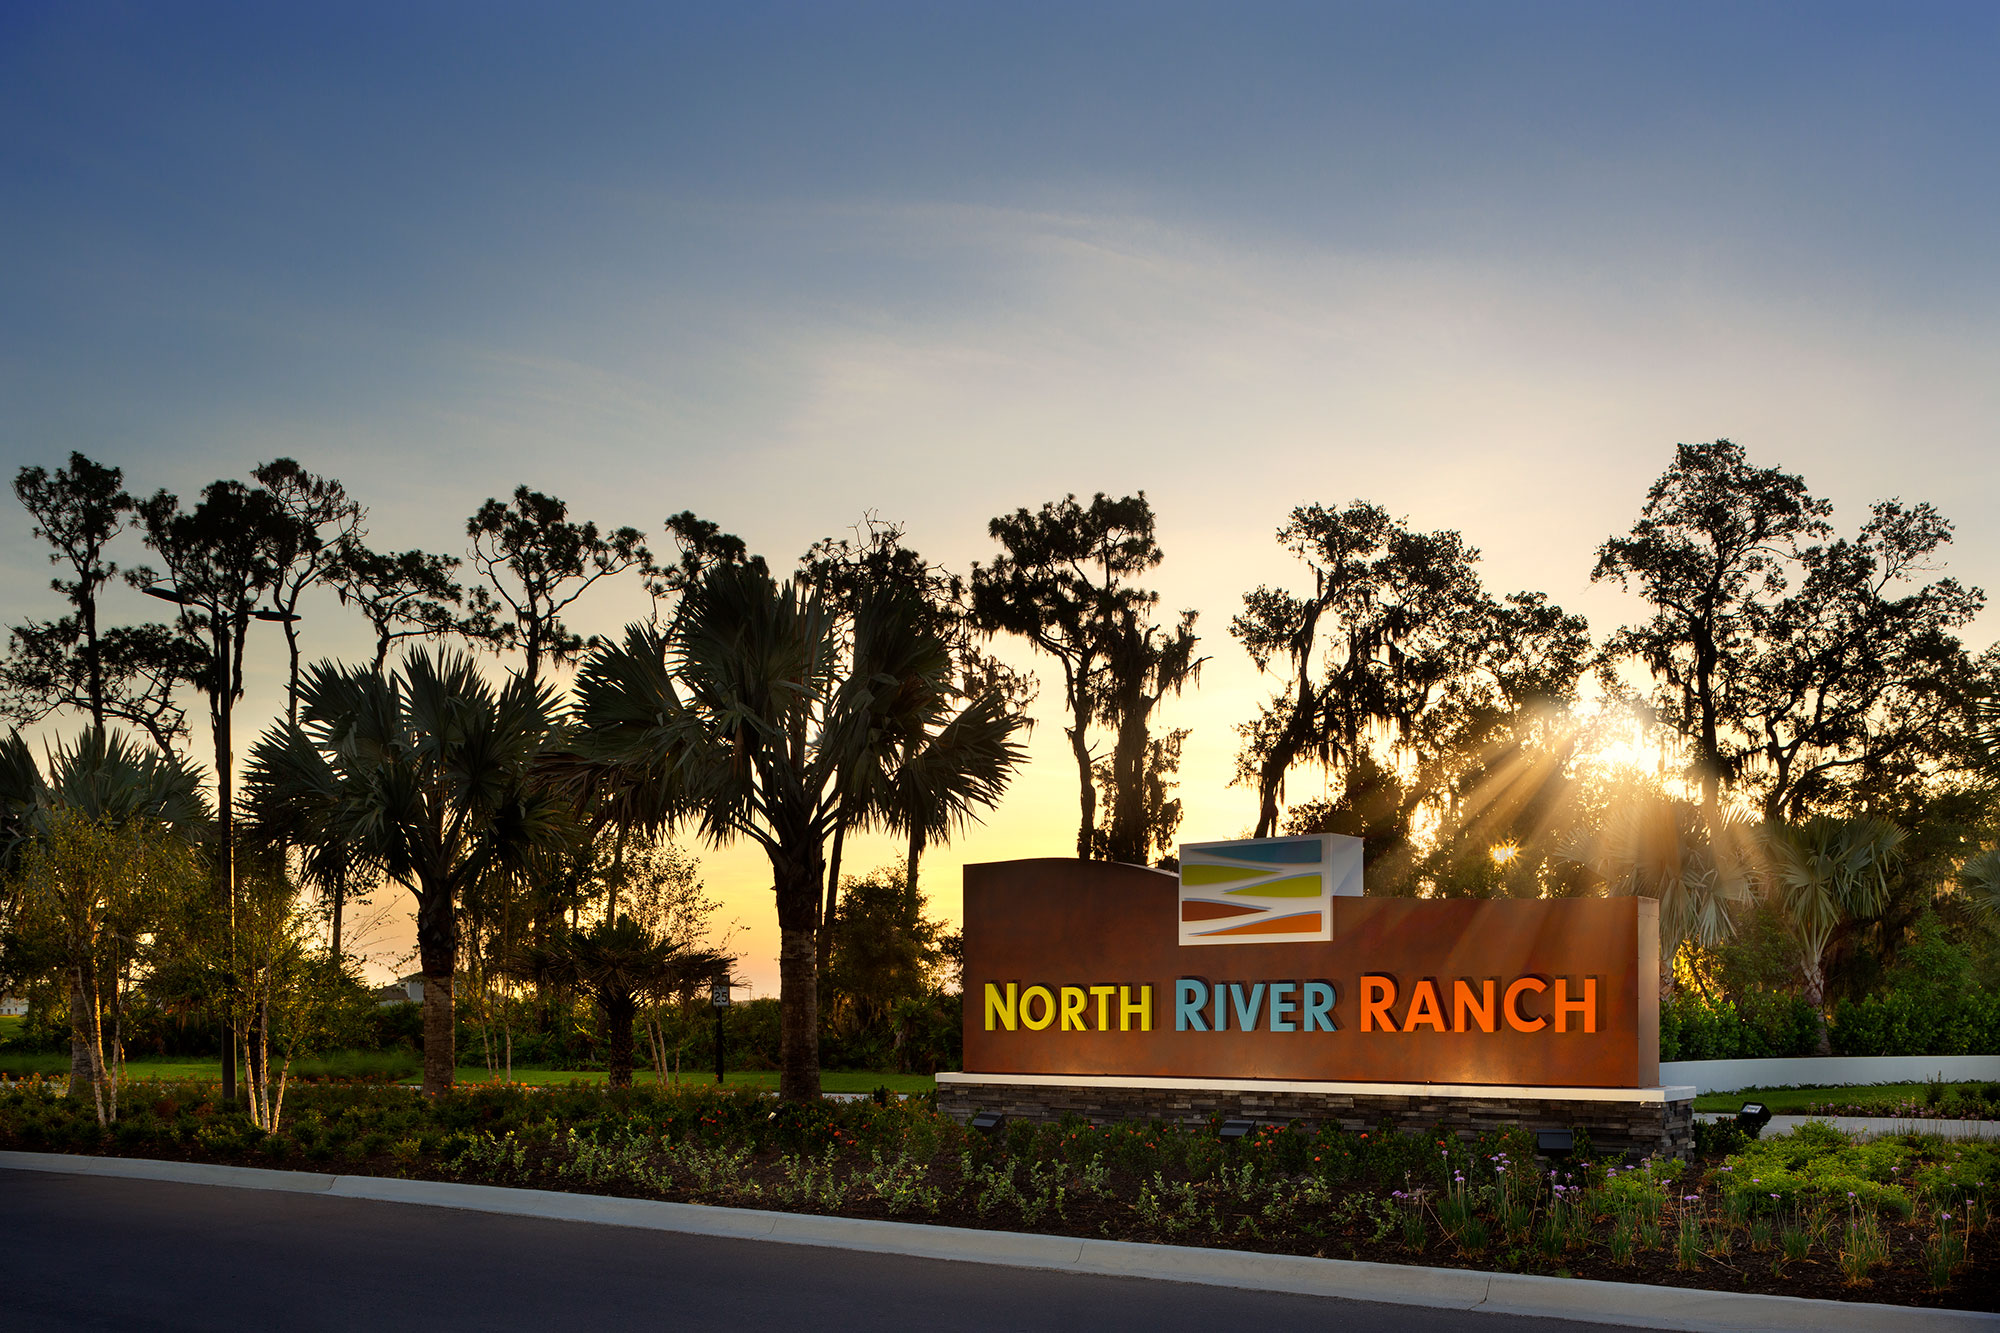 North River Ranch Monument